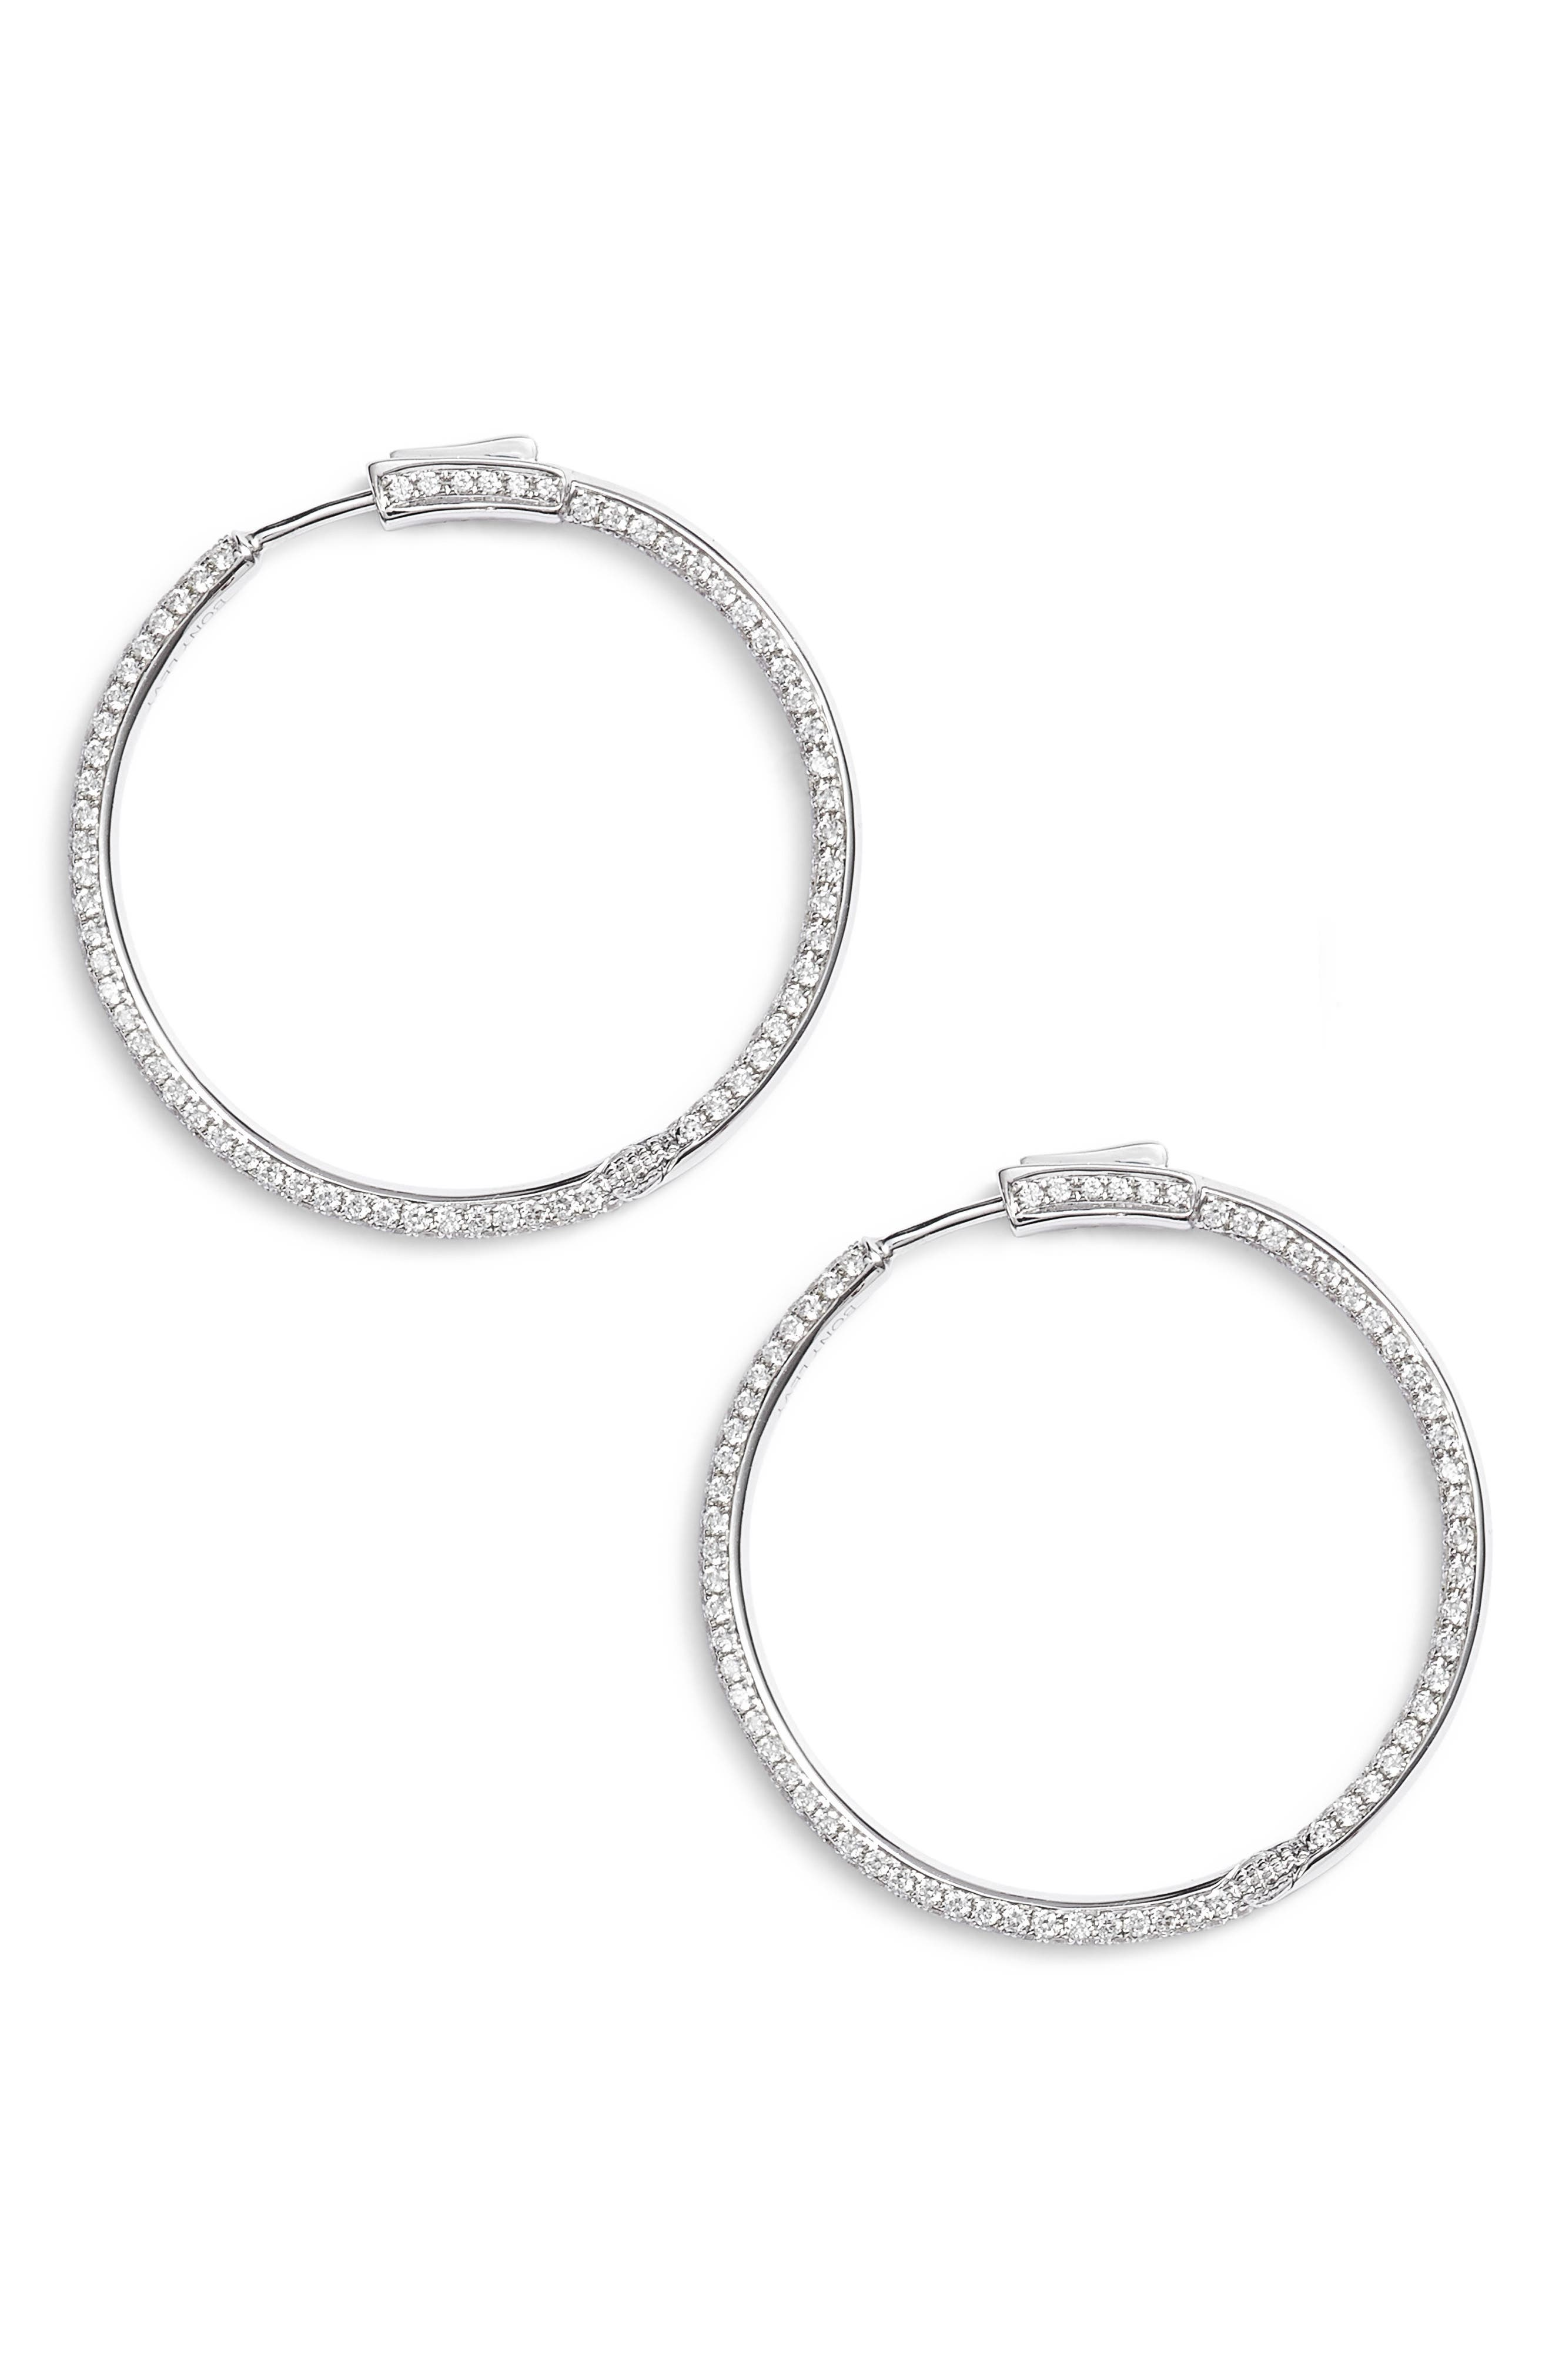 Inside Out Diamond Hoop Earrings,                         Main,                         color, WHITE GOLD